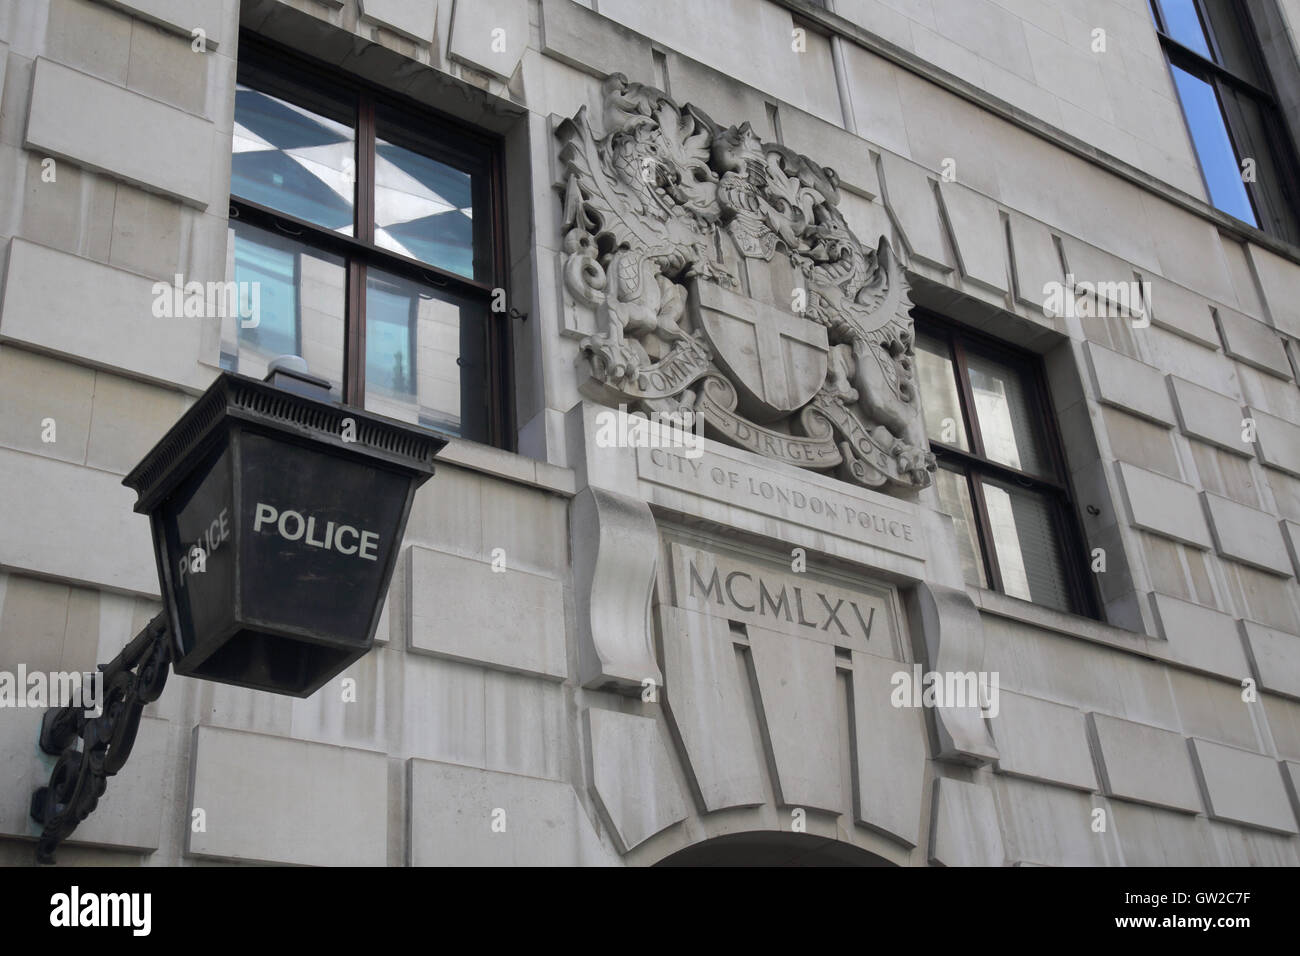 love lane police station in the city of london - Stock Image